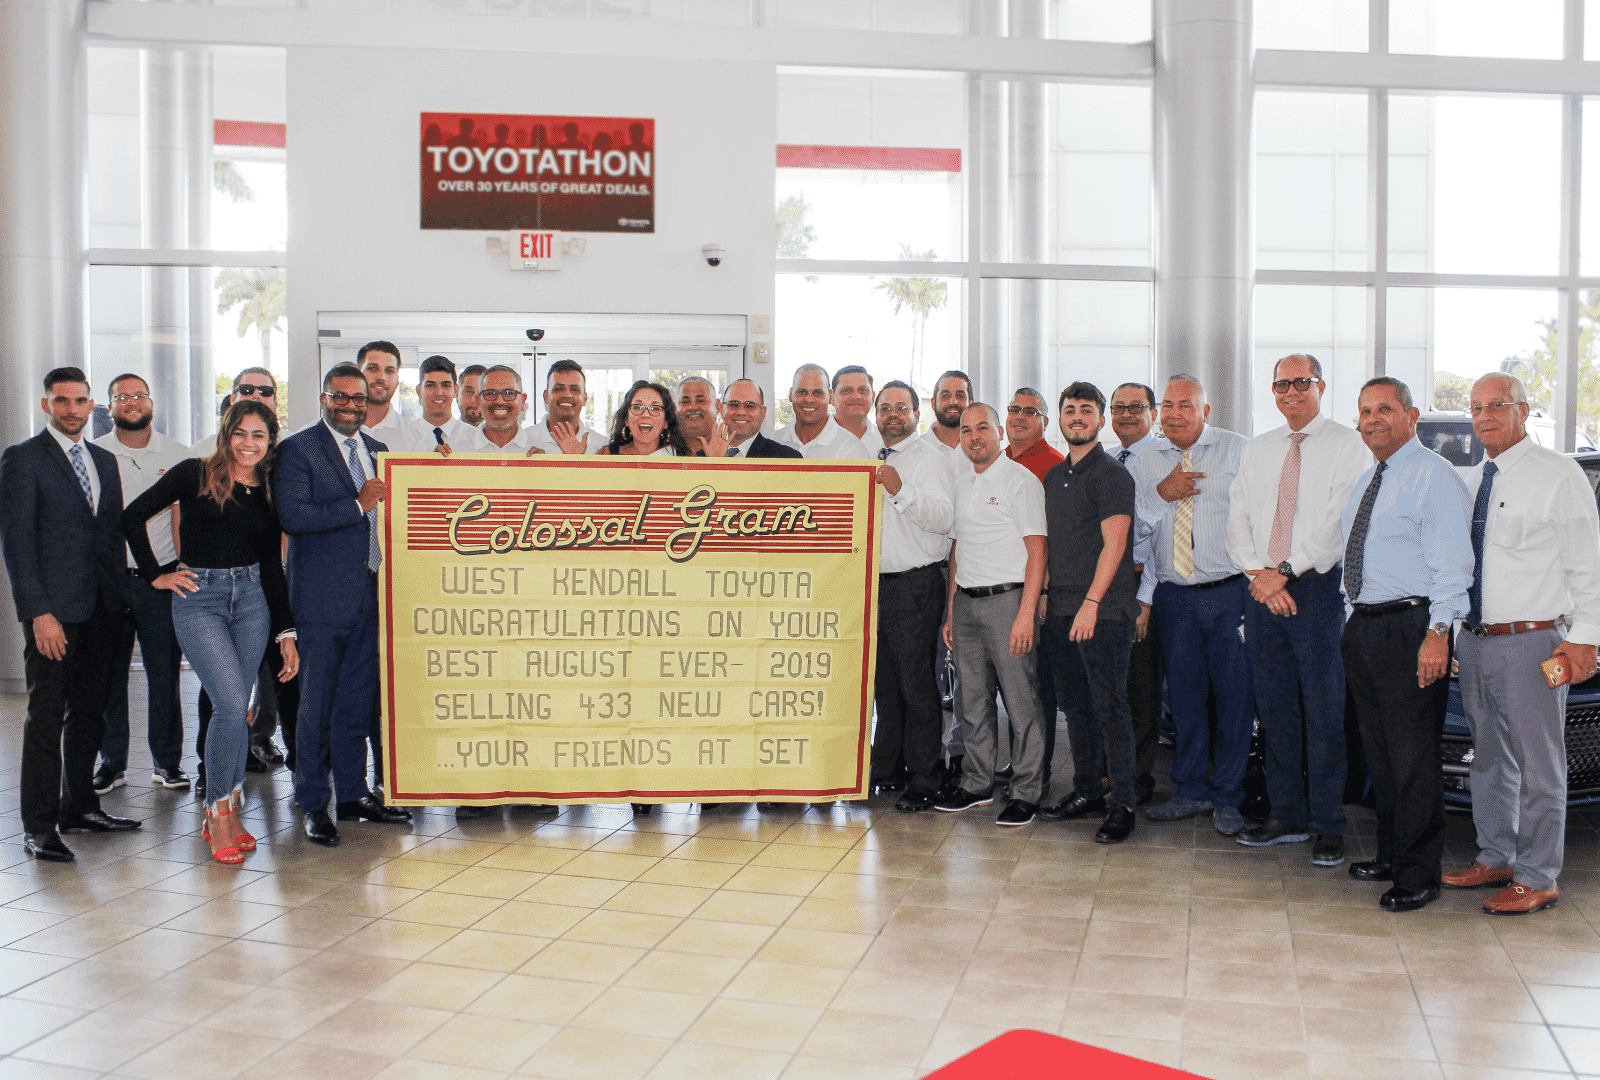 West Kendall Toyota Group Pic